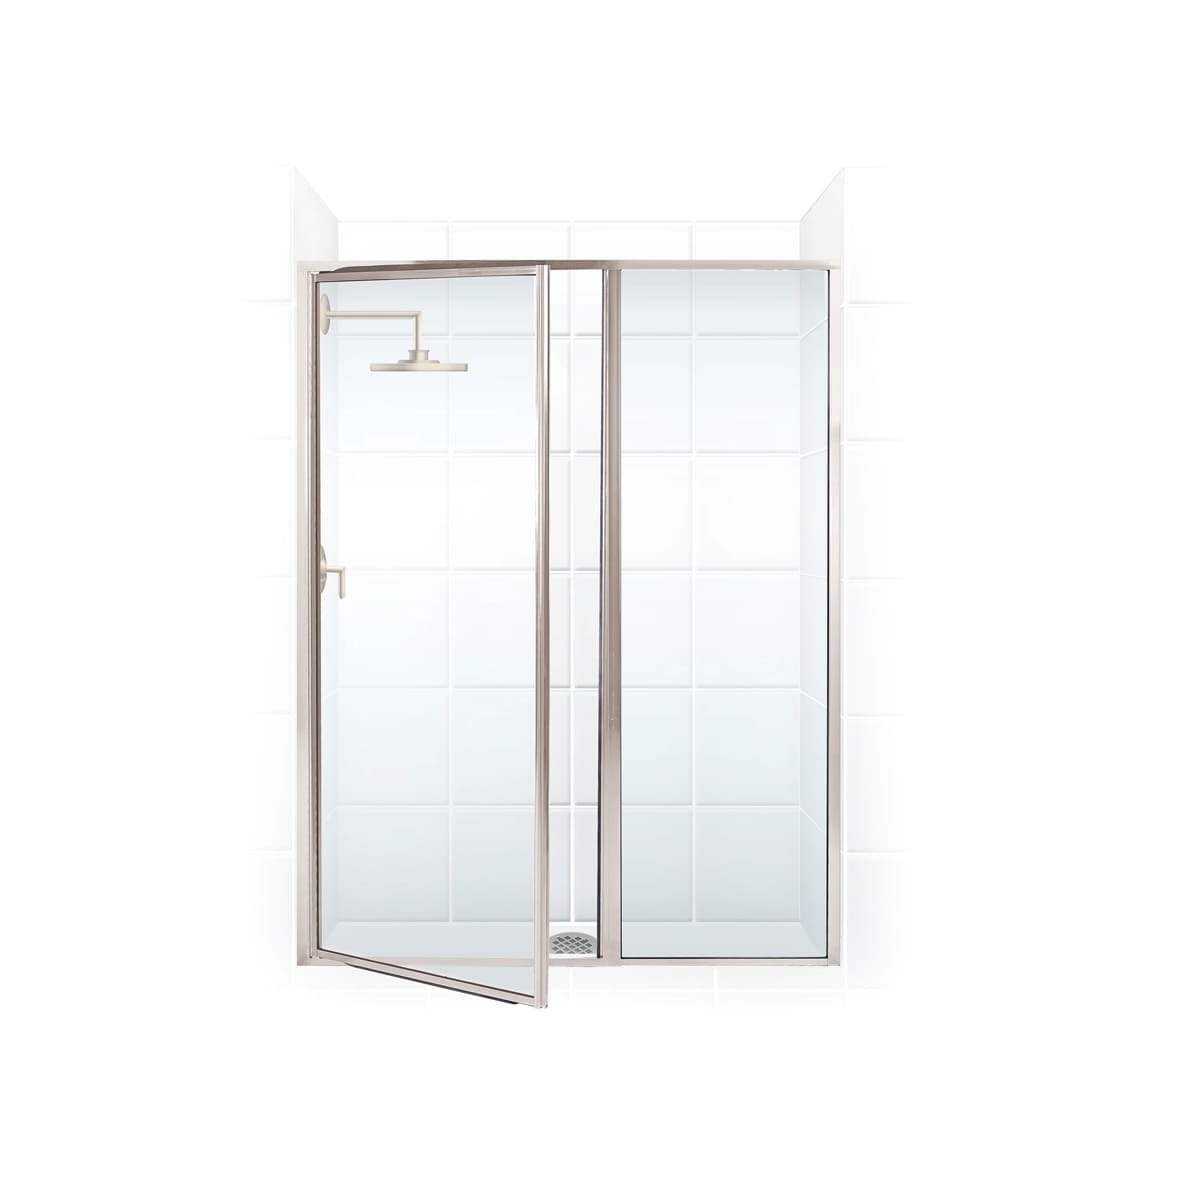 Coastal Shower Doors L24il15 66 C